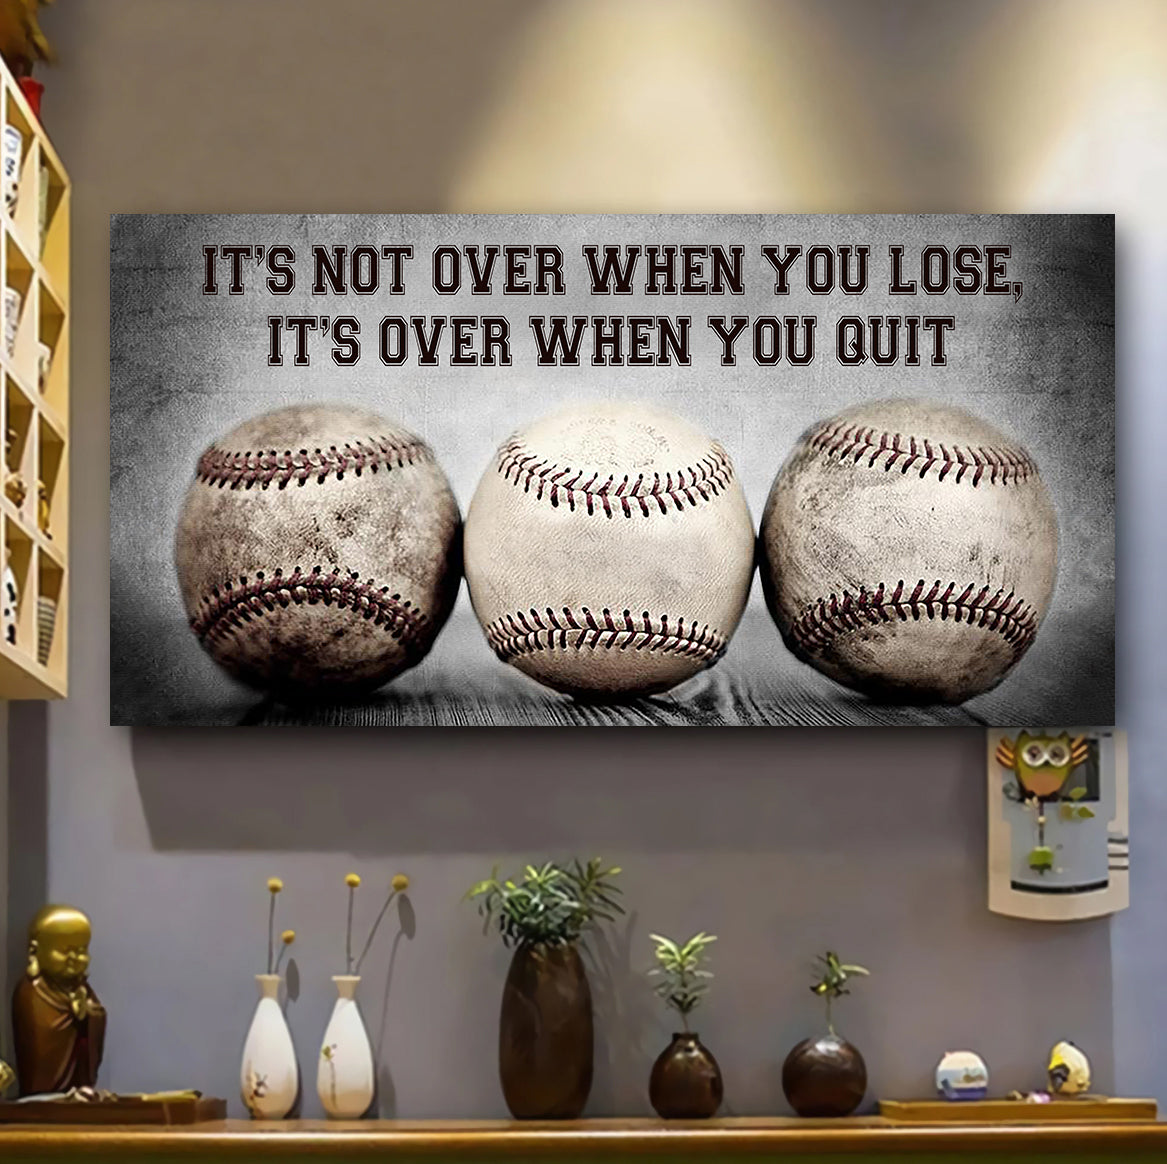 (LP333) Customizable Baseball Poster, Canvas - It's not over when you lose - FREE SHIPPING ON ORDERS OVER $75